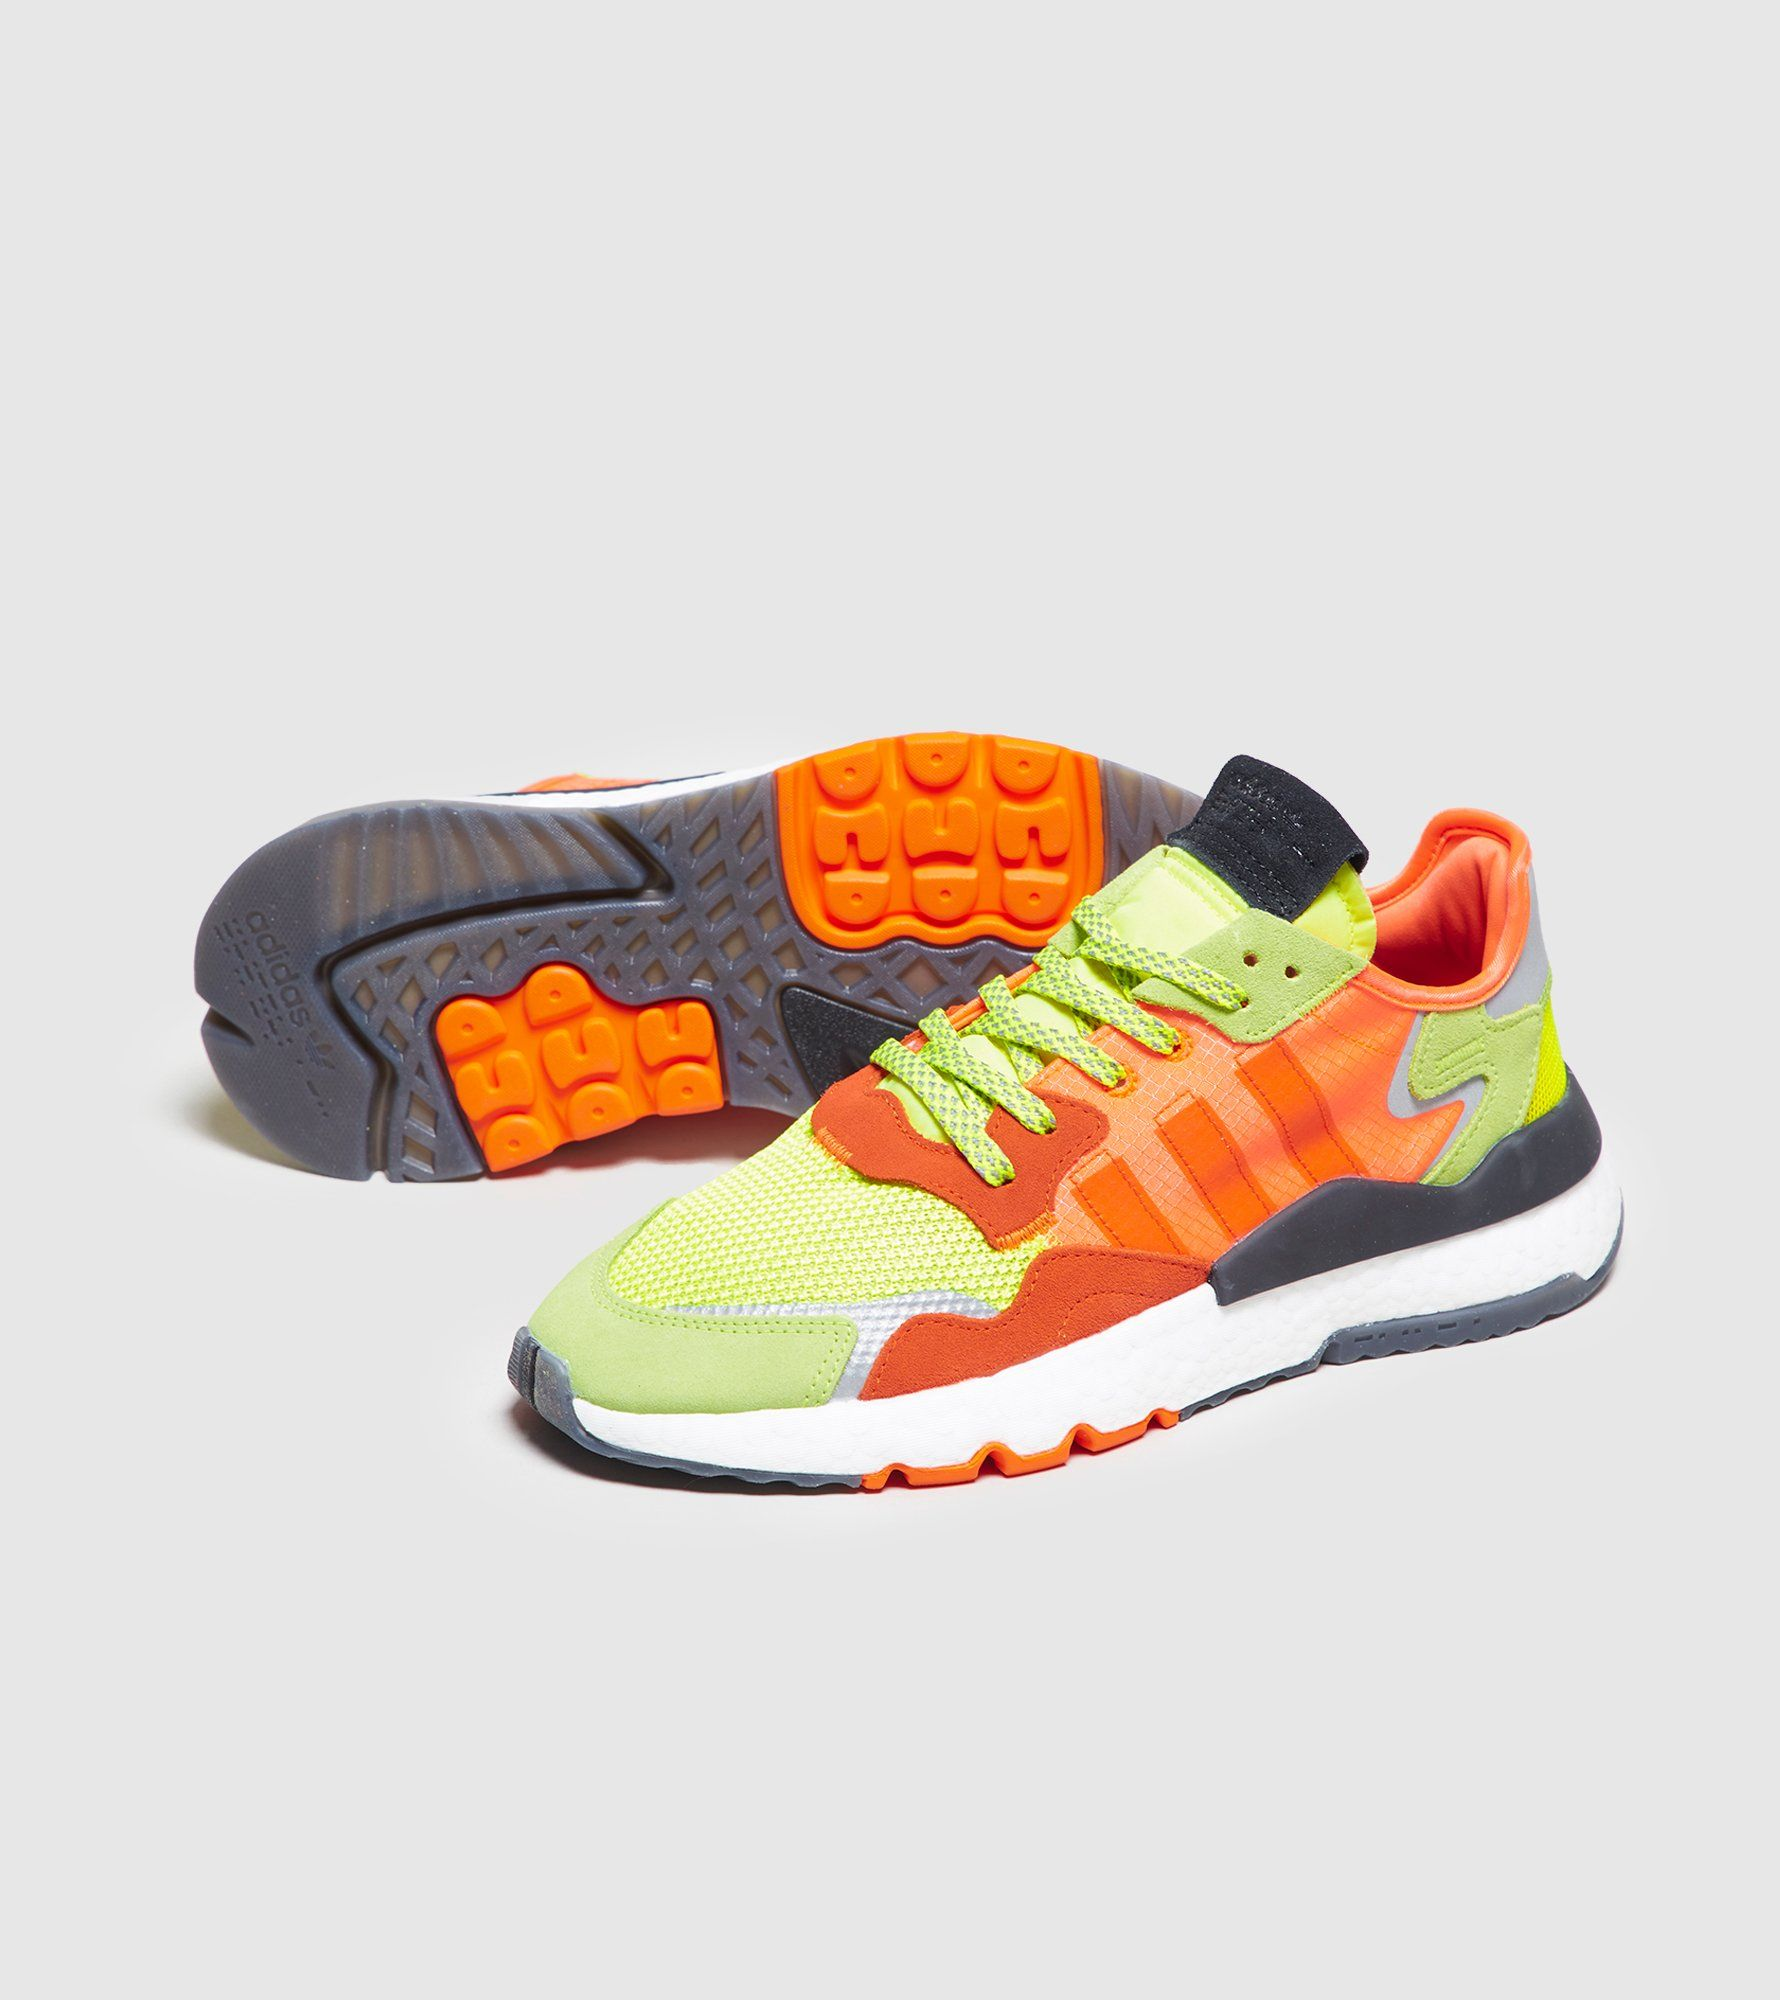 adidas Originals Nite Jogger 'Road Safety' - size? Exclusive